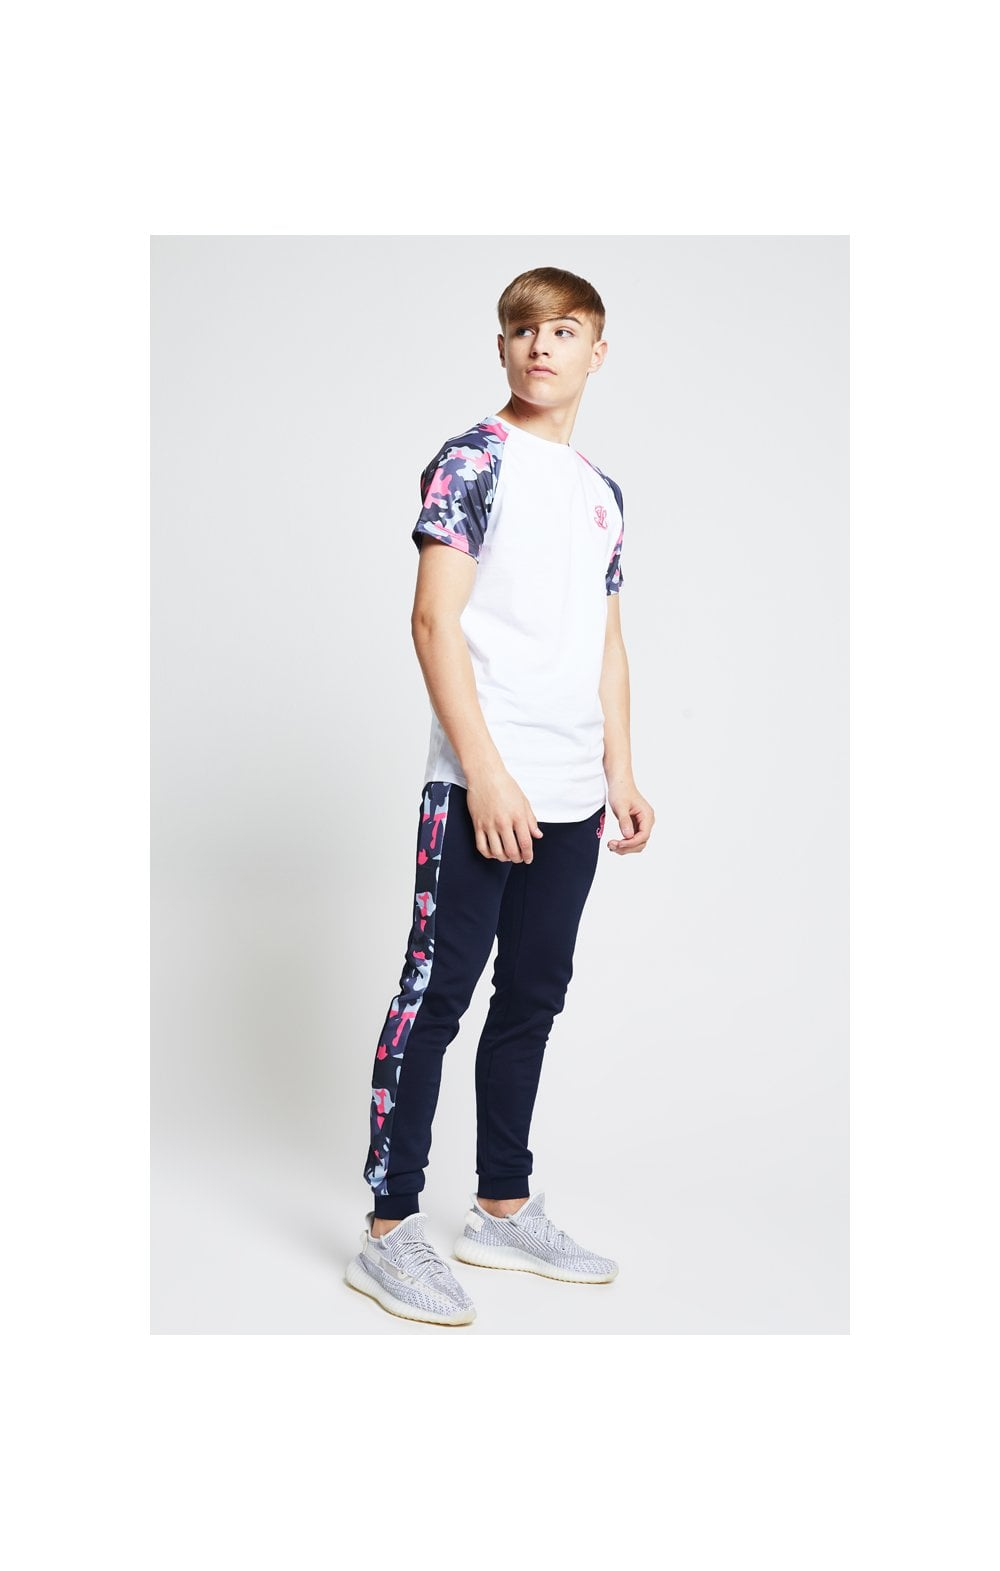 Illusive London Raglan Tee – White & Neon Pink Camo (3)